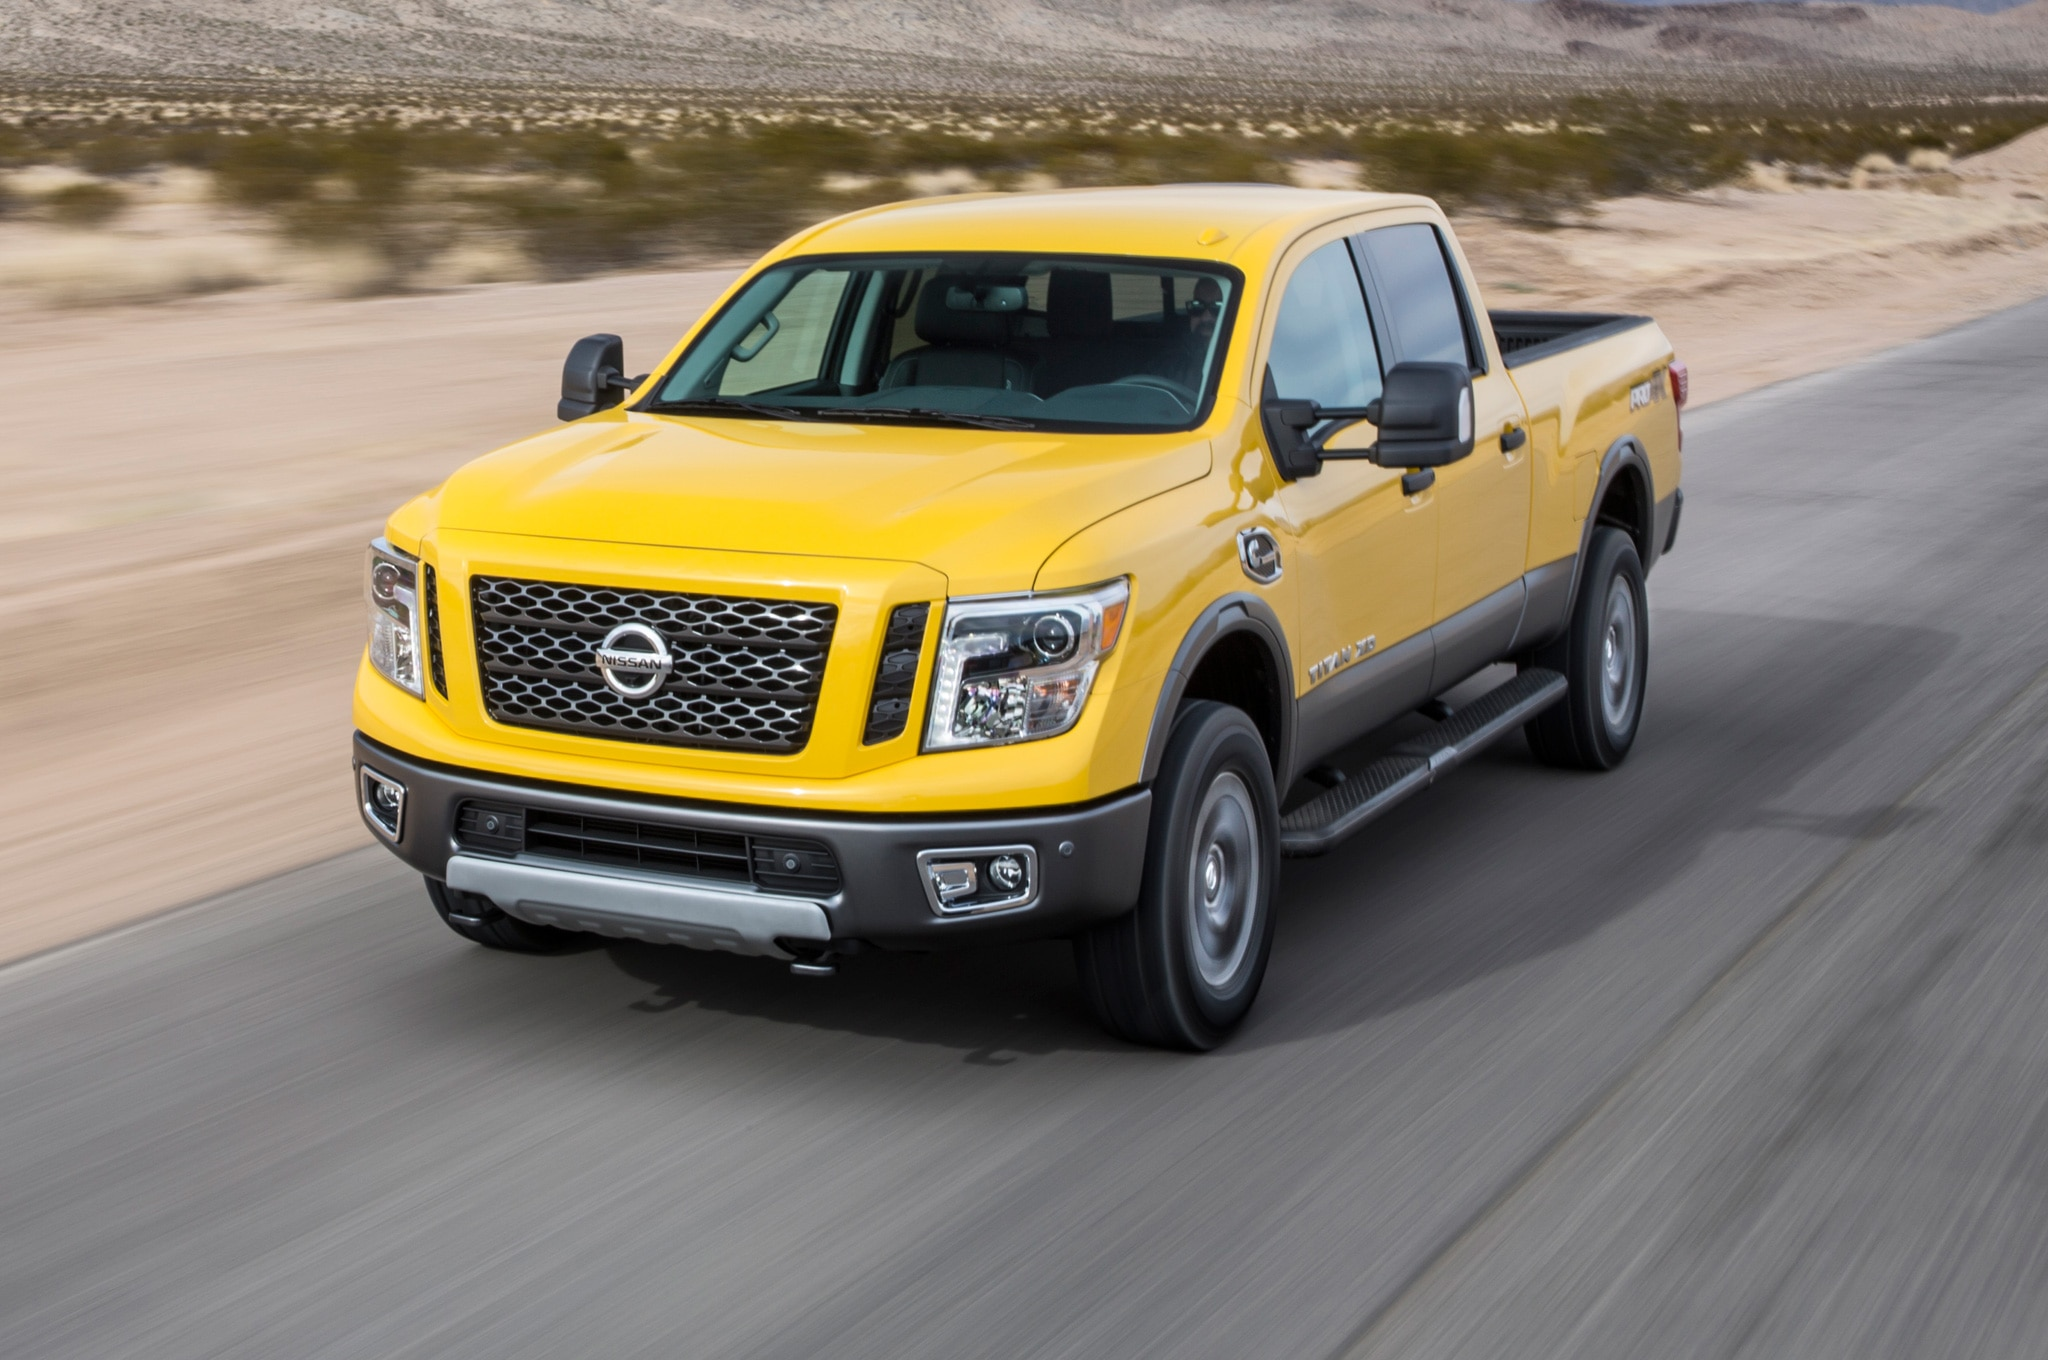 2016 nissan titan xd gains 5 6 liter gasoline v 8 engine. Black Bedroom Furniture Sets. Home Design Ideas